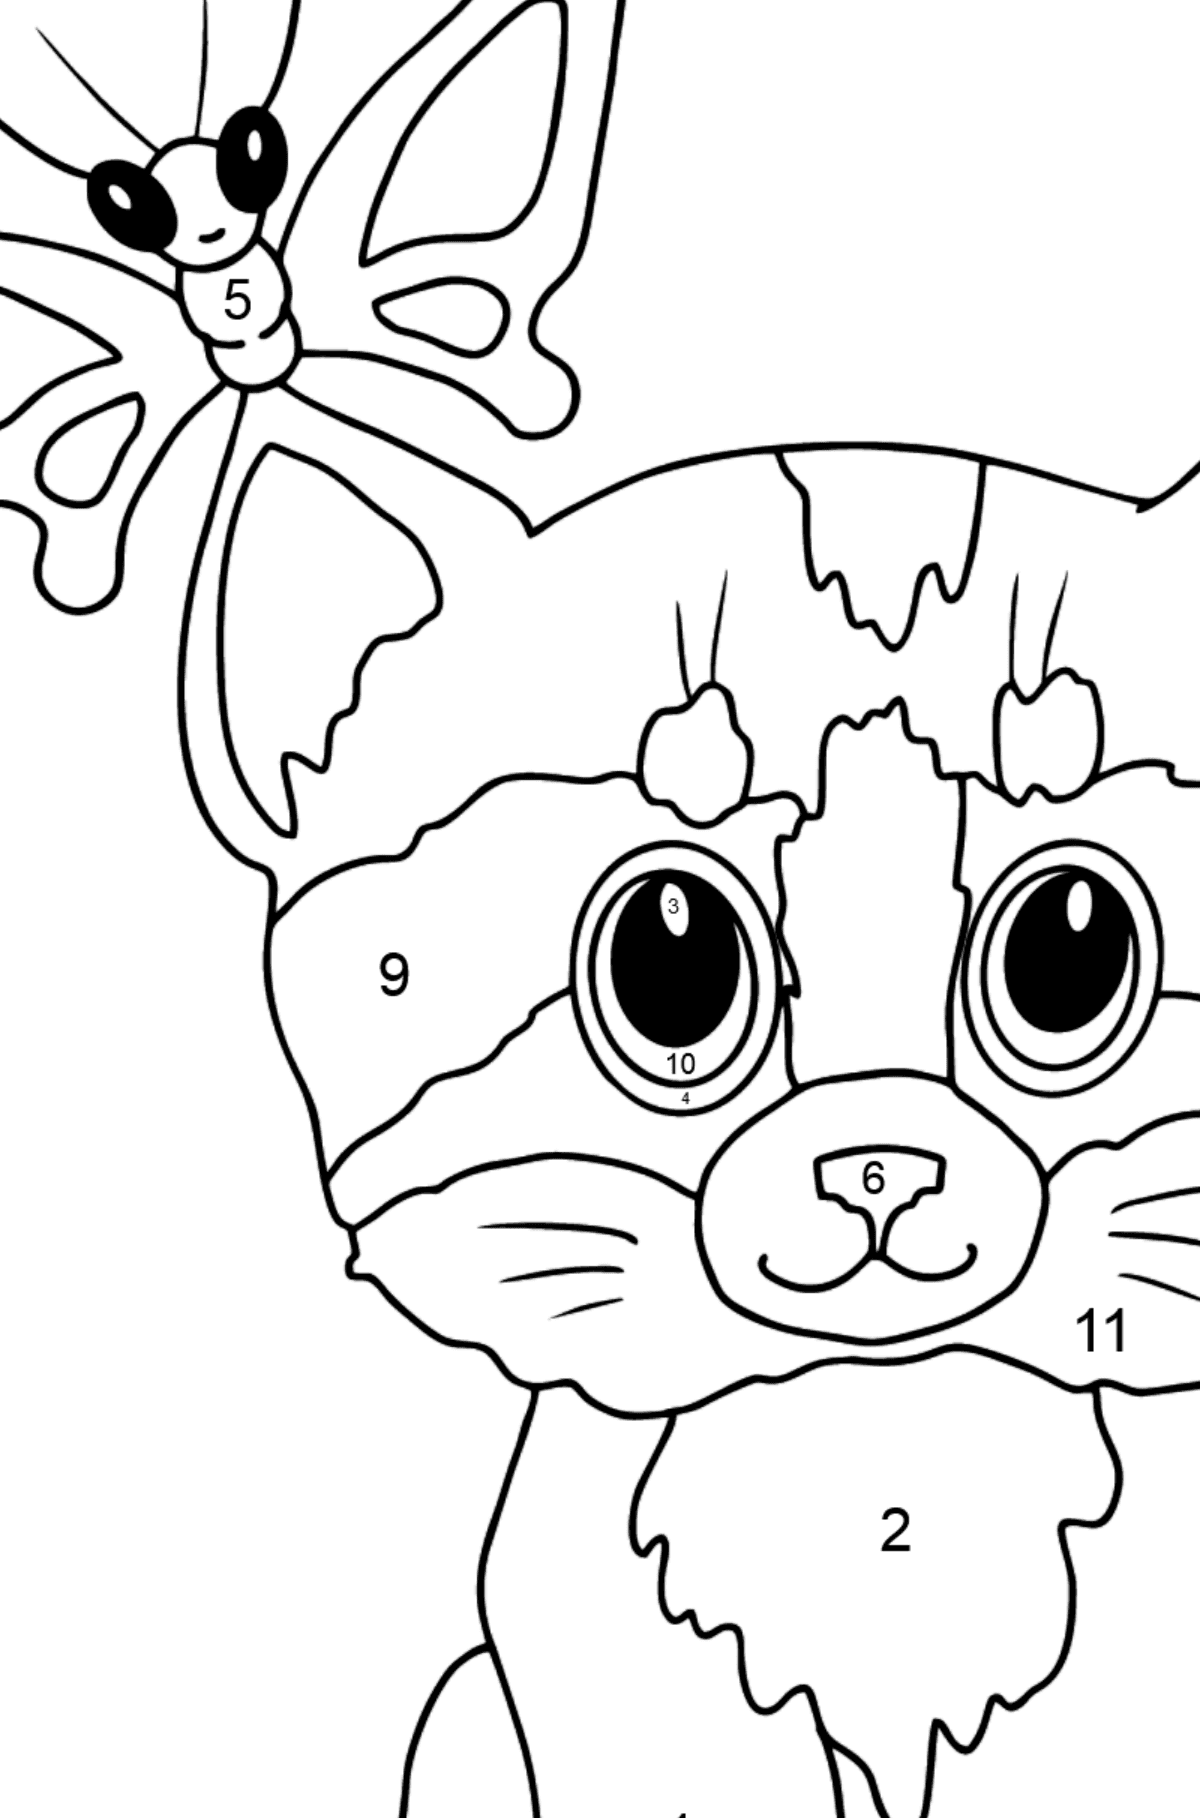 Coloring Page - A Kitten has Caught a Butterfly - Coloring by Numbers for Kids